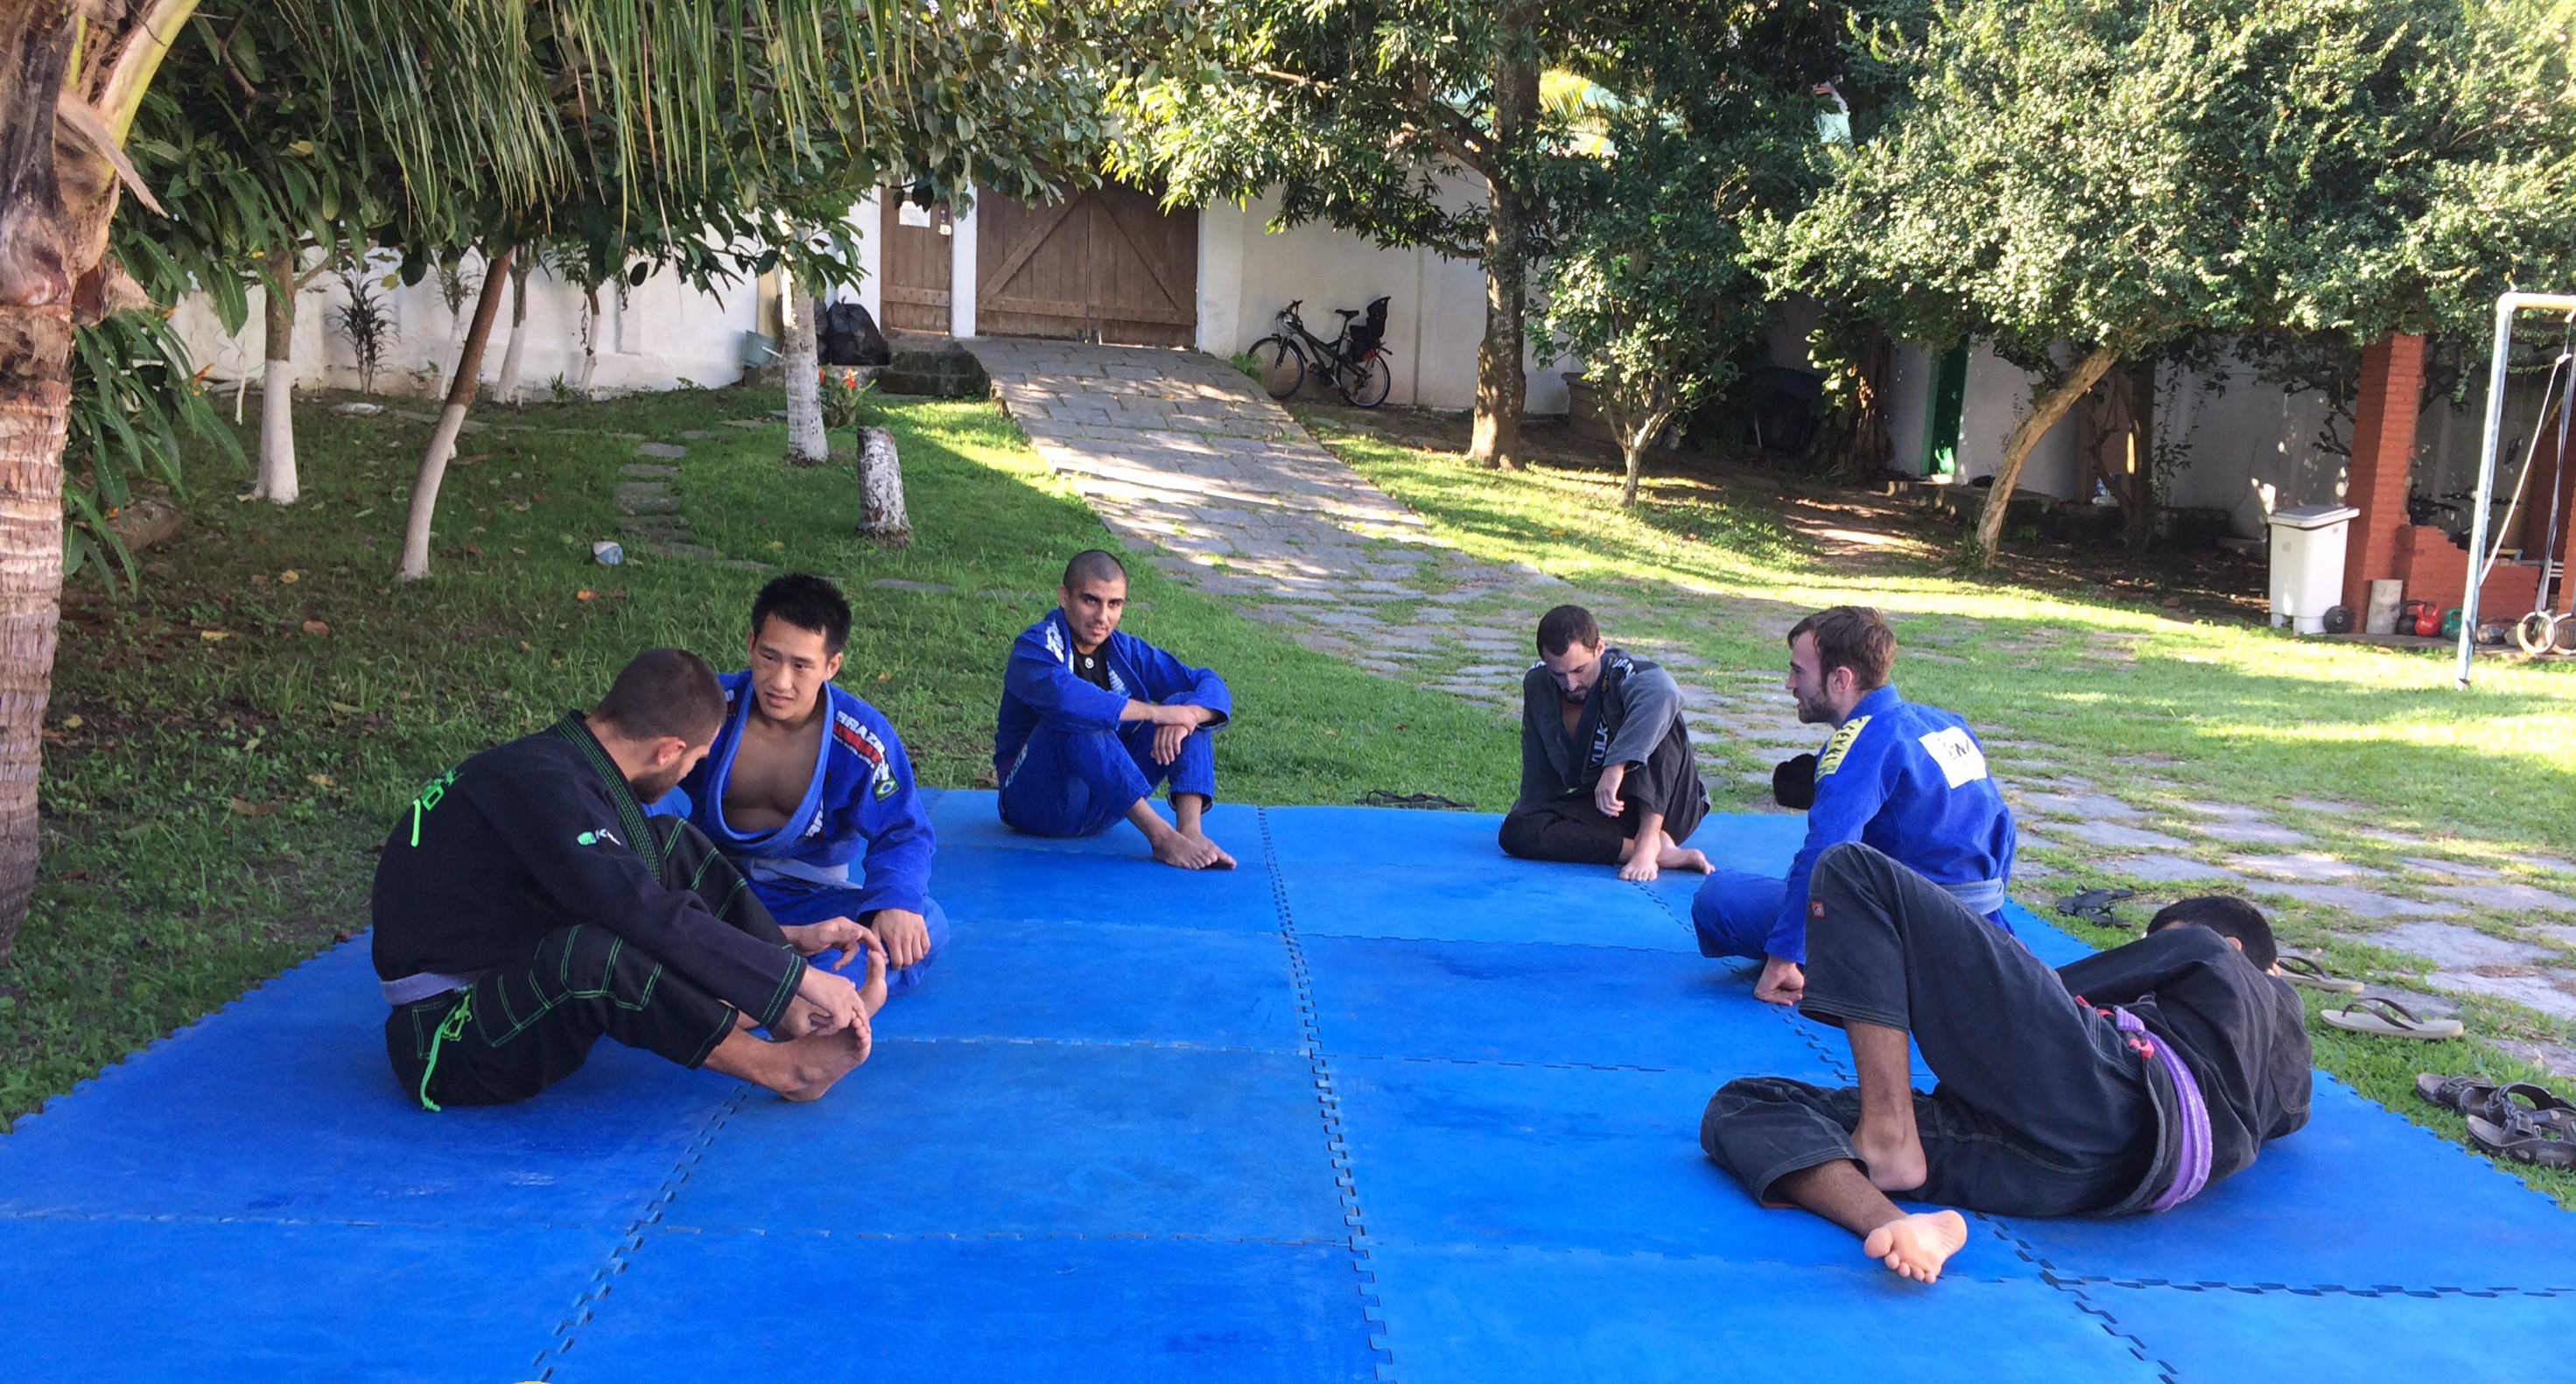 Review of Connection Rio BJJ Hostel